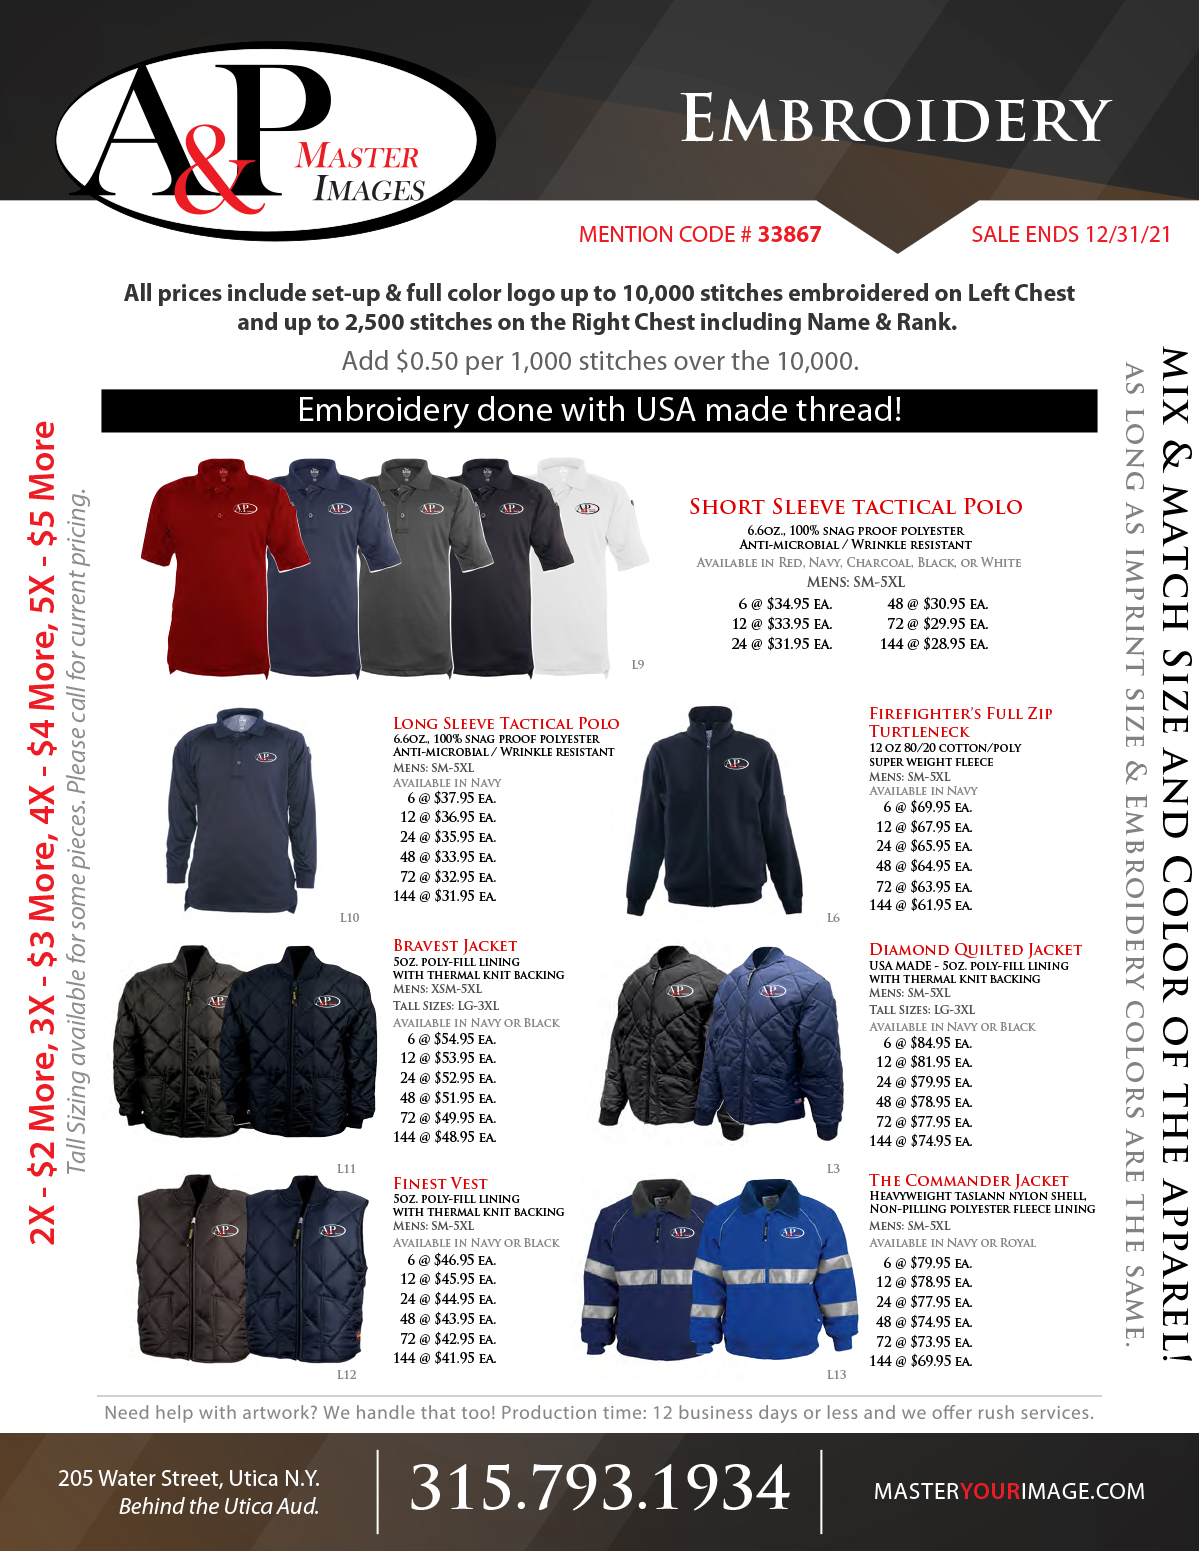 Sales Flyers - Embroidery 11